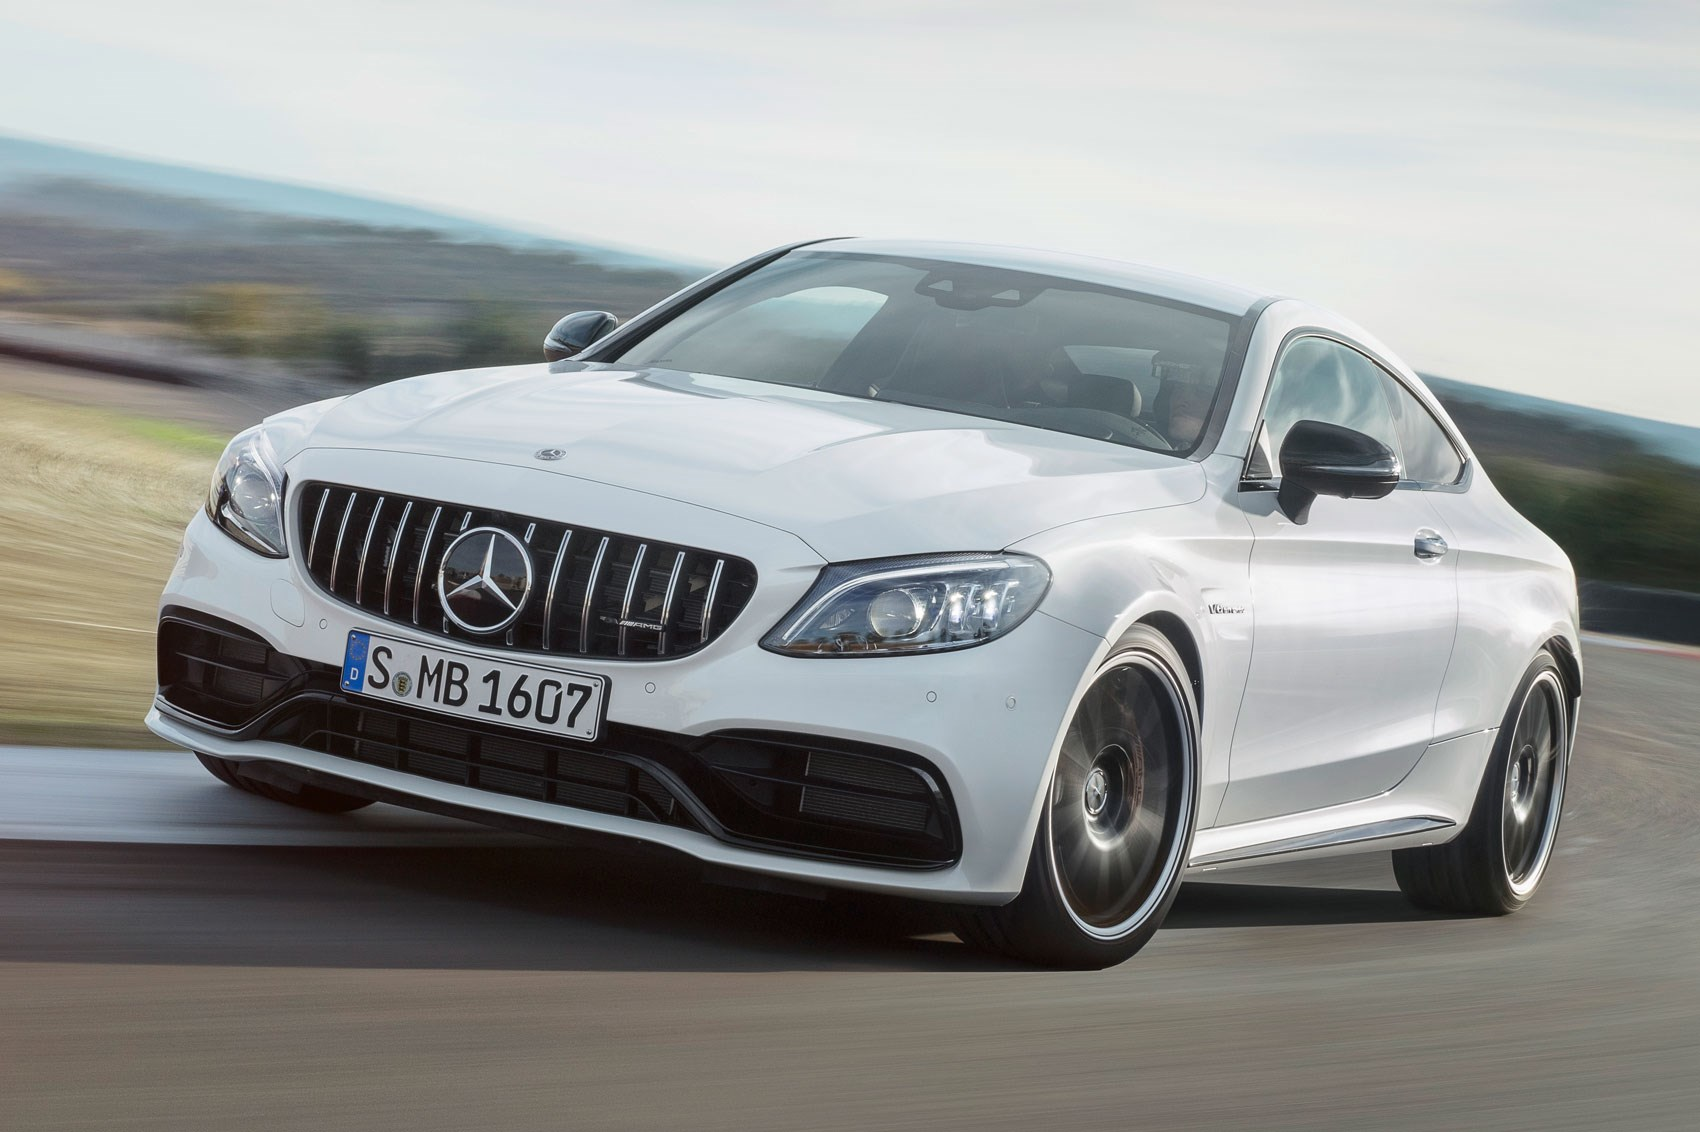 v8 update facelifted mercedes amg c63 s revealed at nyias. Black Bedroom Furniture Sets. Home Design Ideas